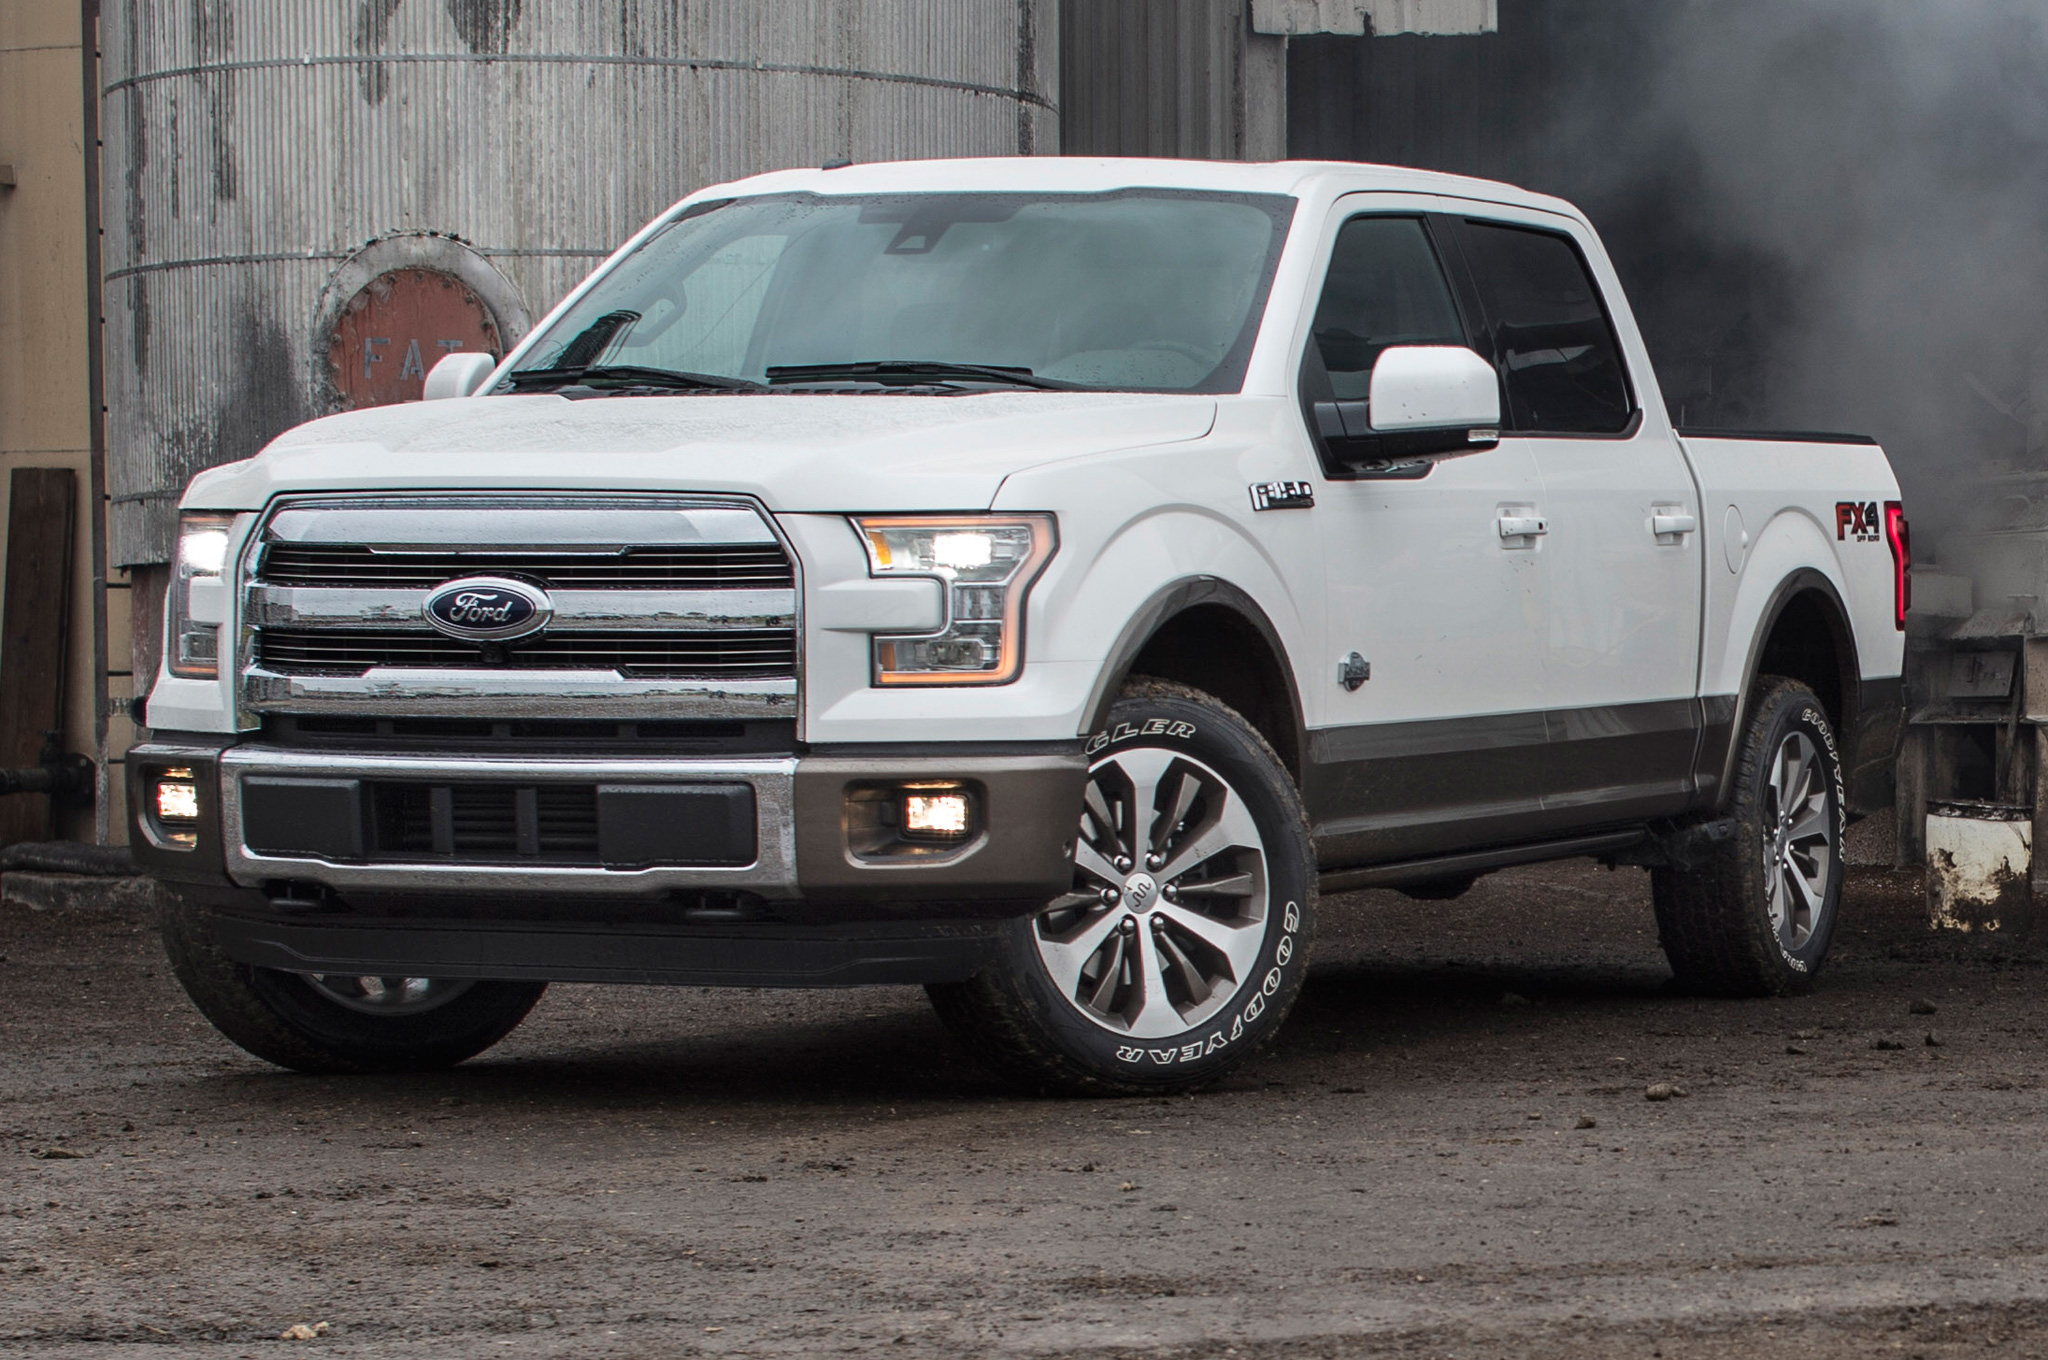 Ford F-250 #15